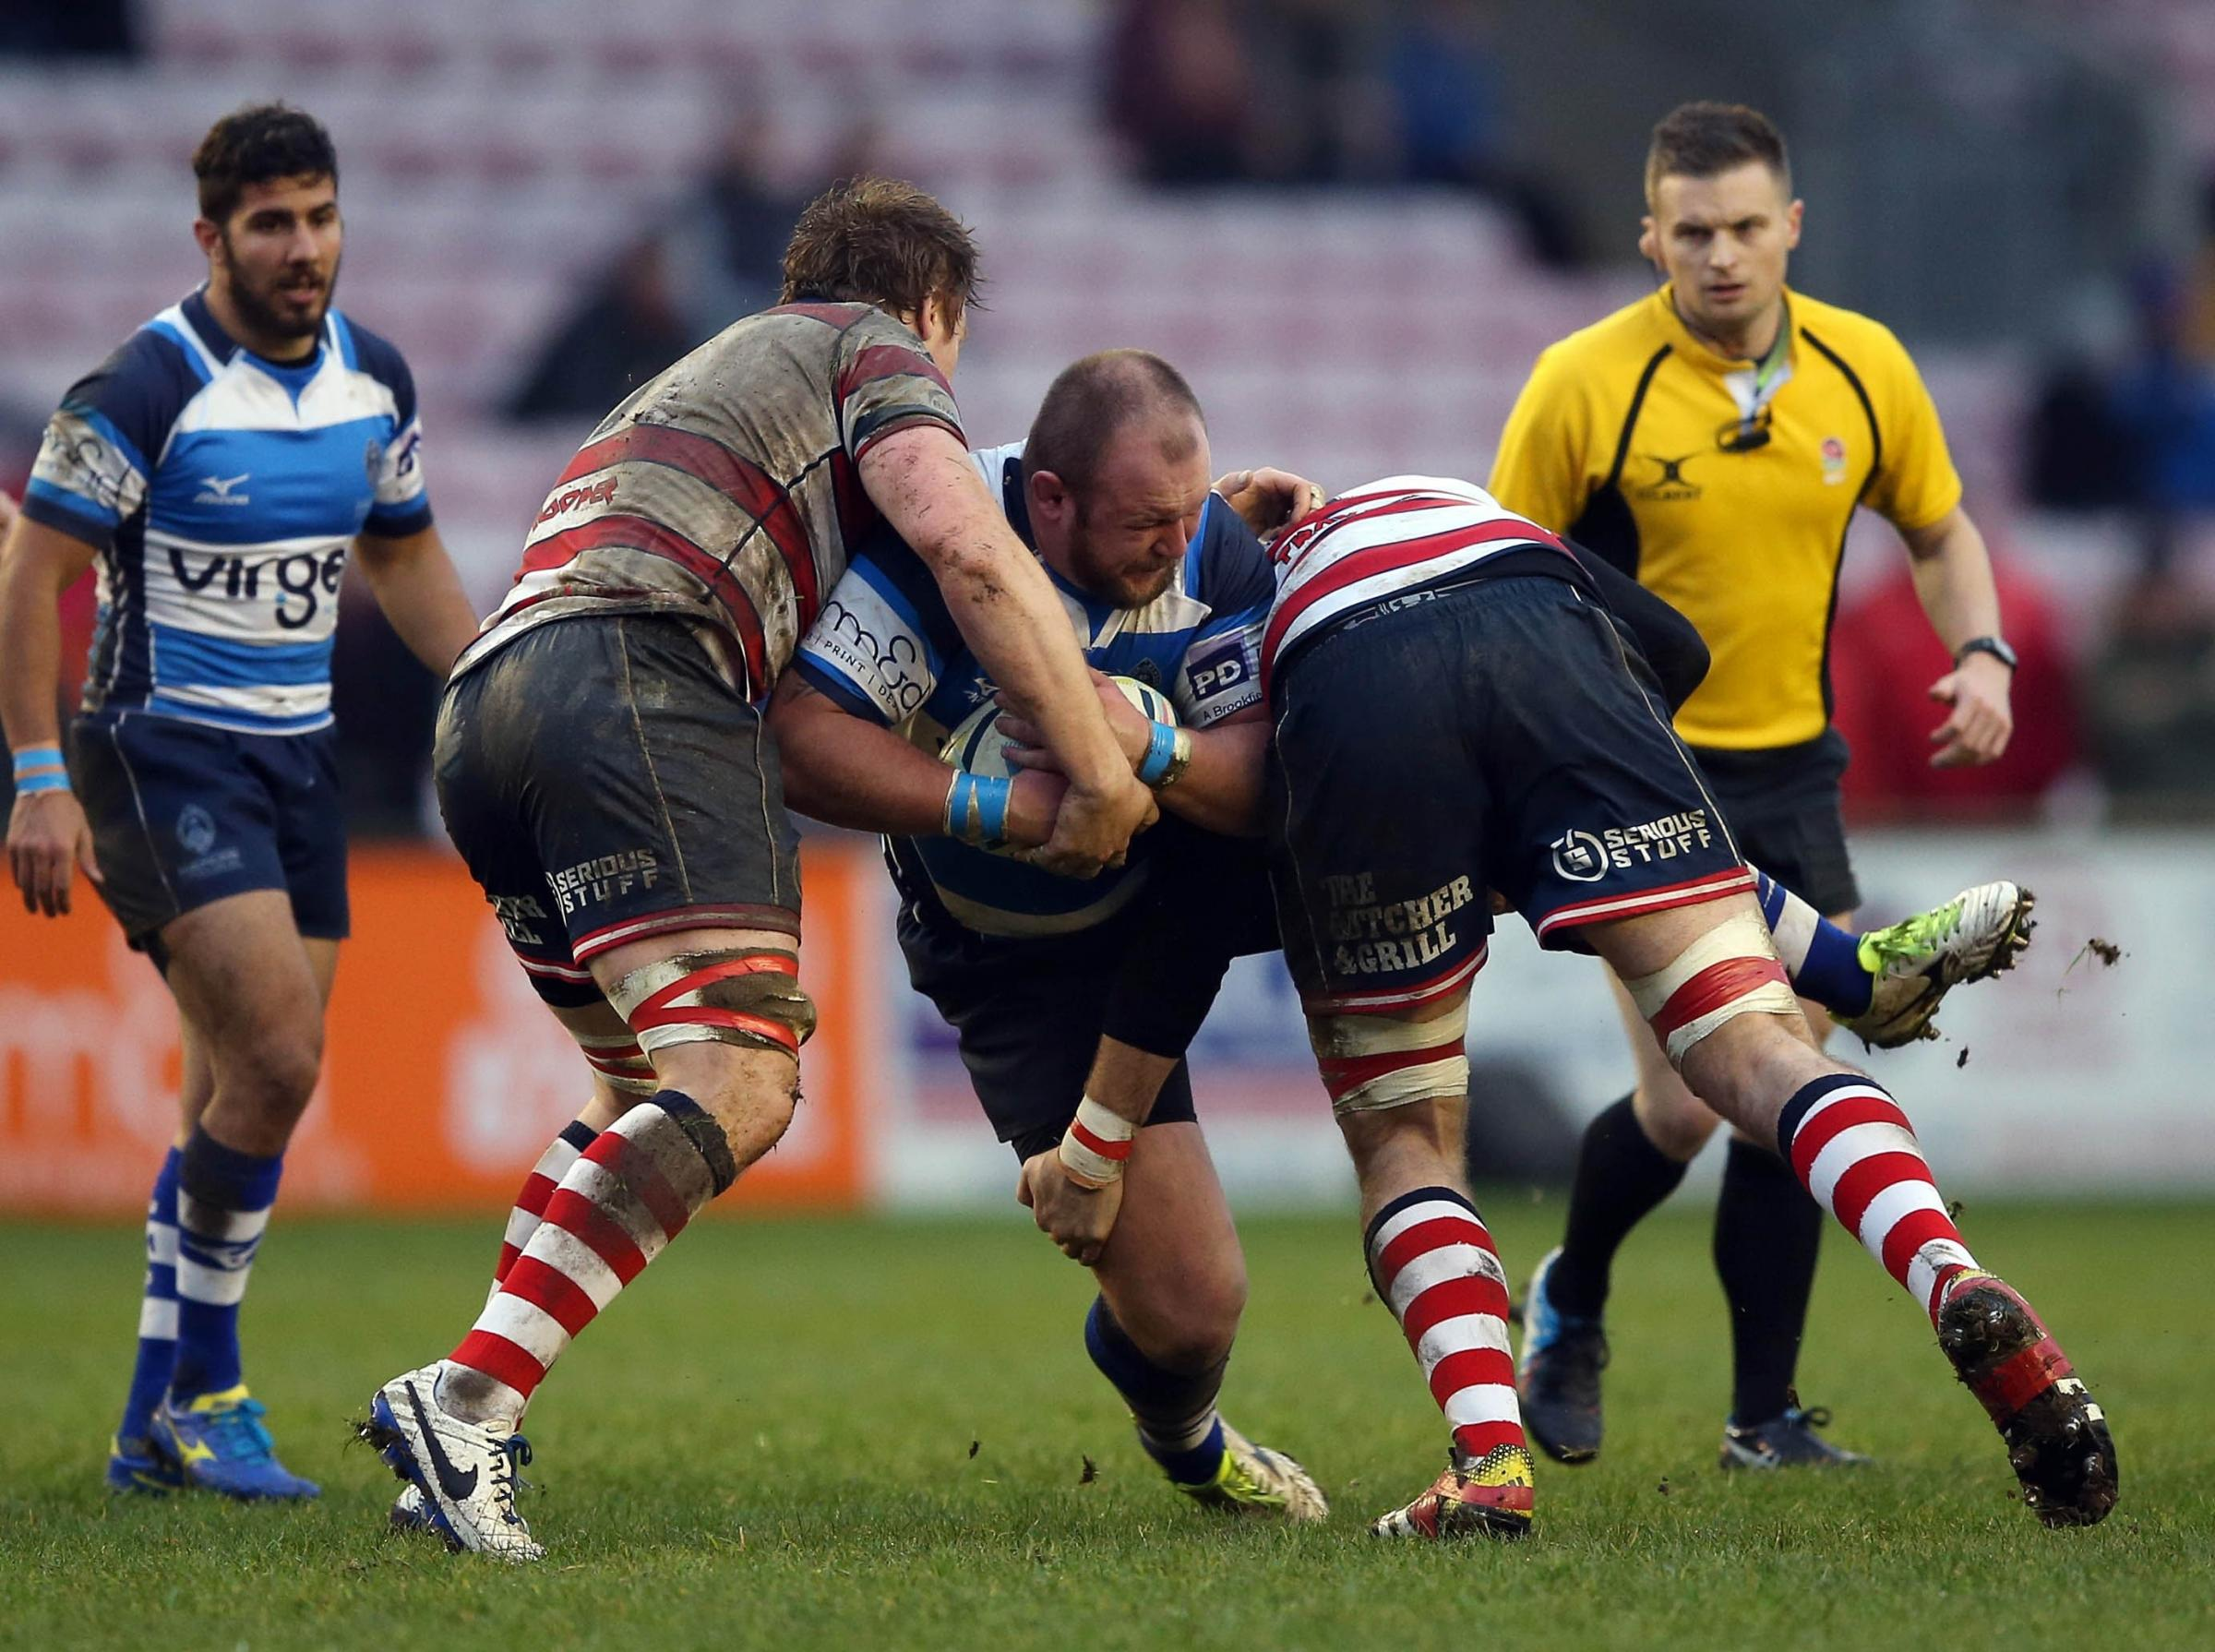 NEW DEAL: Mowden's Ignas Darkintis. Picture: CHRIS BOOTH.